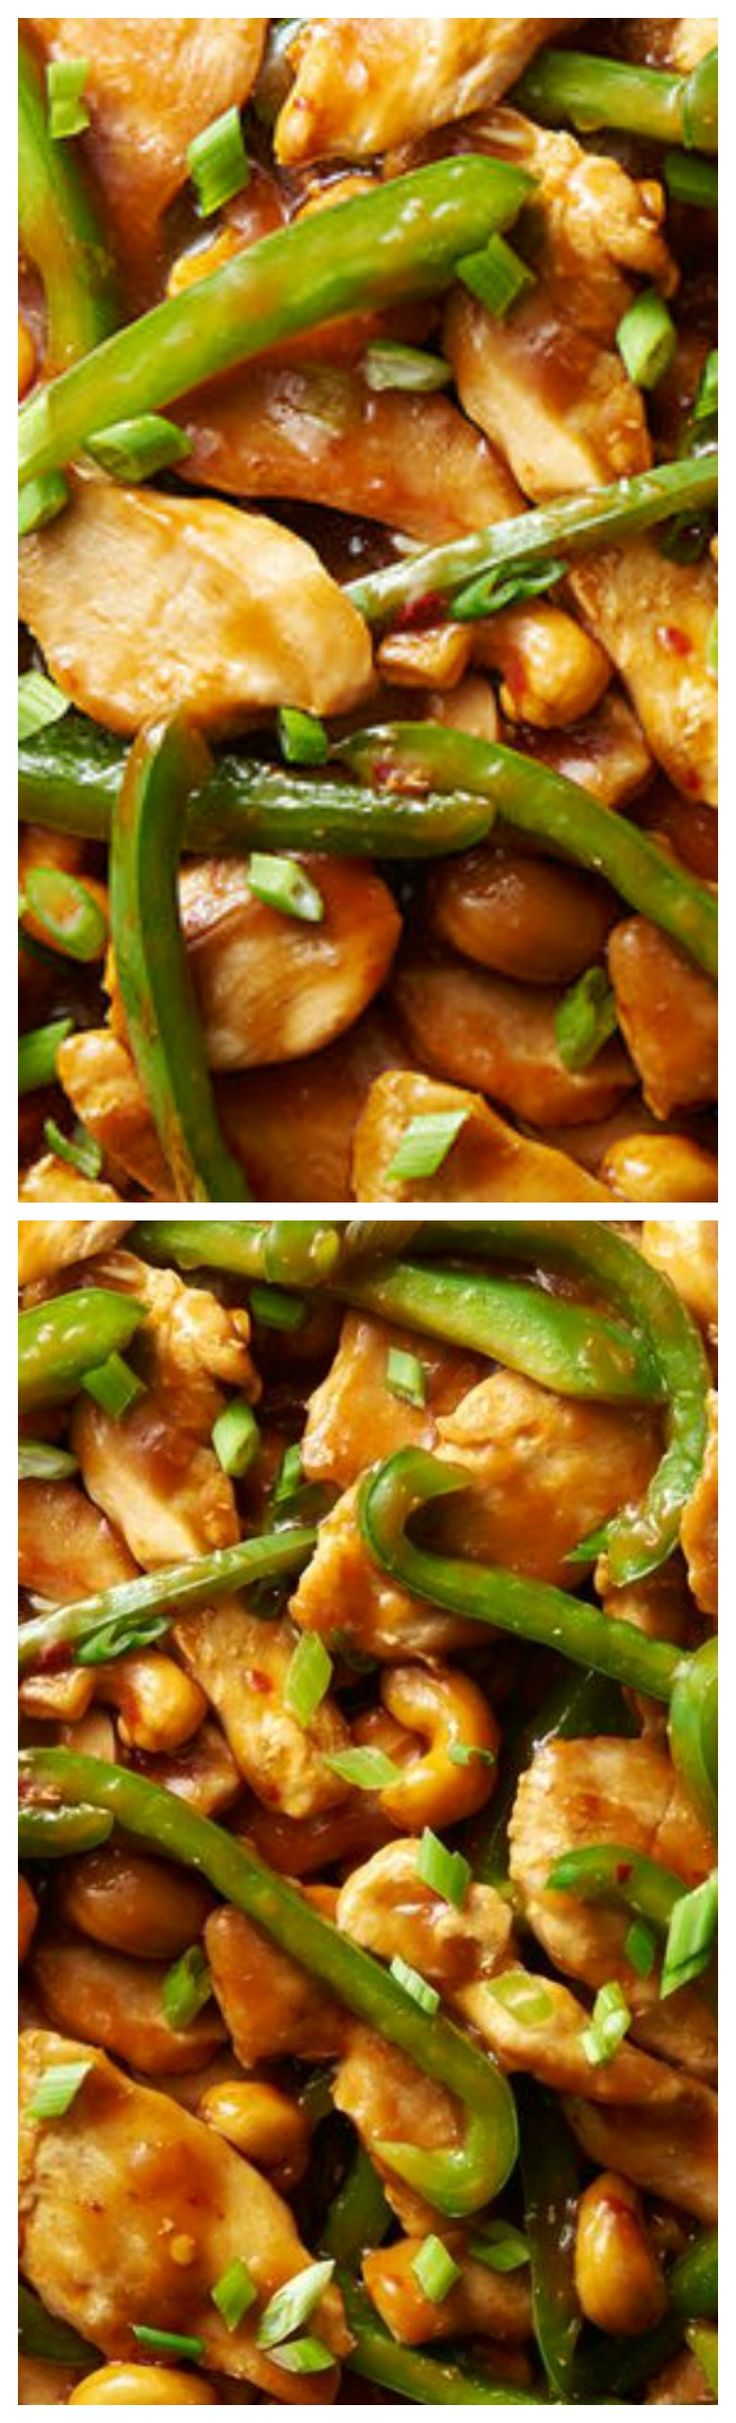 Cashew Chicken ~ Insanely easy and delicious recipe that comes together quickly in a single skillet